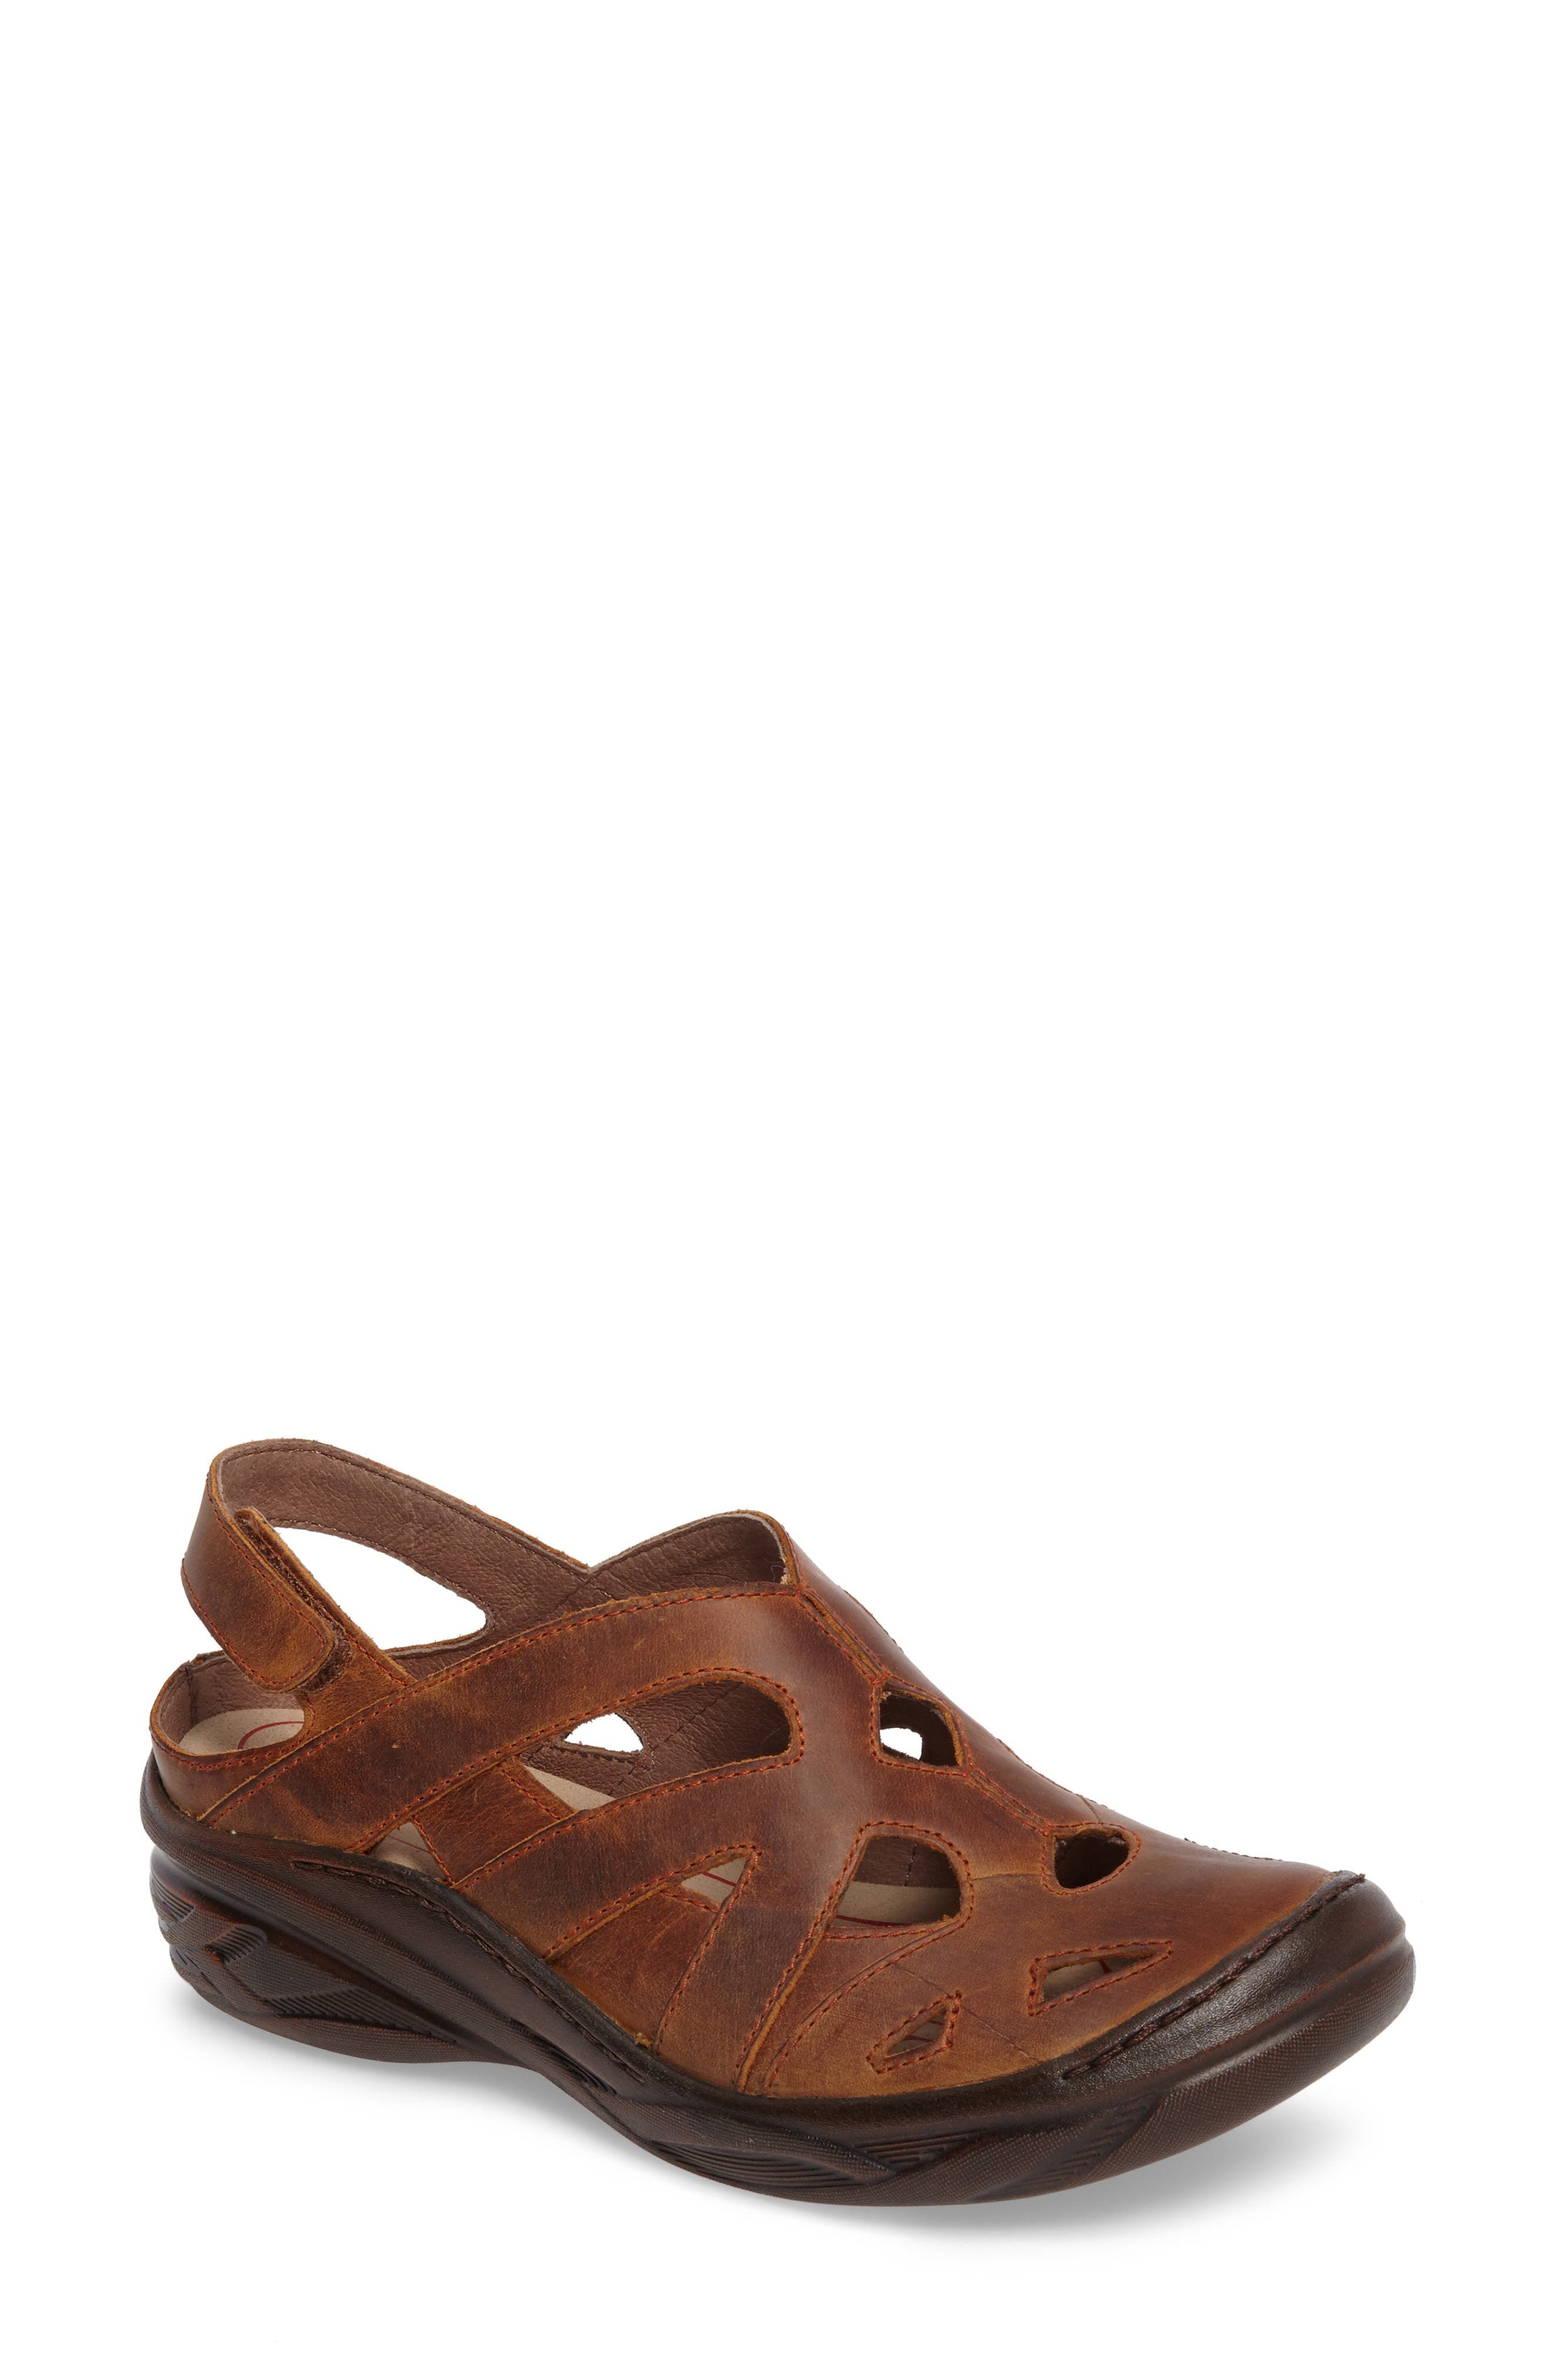 BIONICA,                             Maclean Sandal,                             Main thumbnail 1, color,                             ALMOND TAN LEATHER